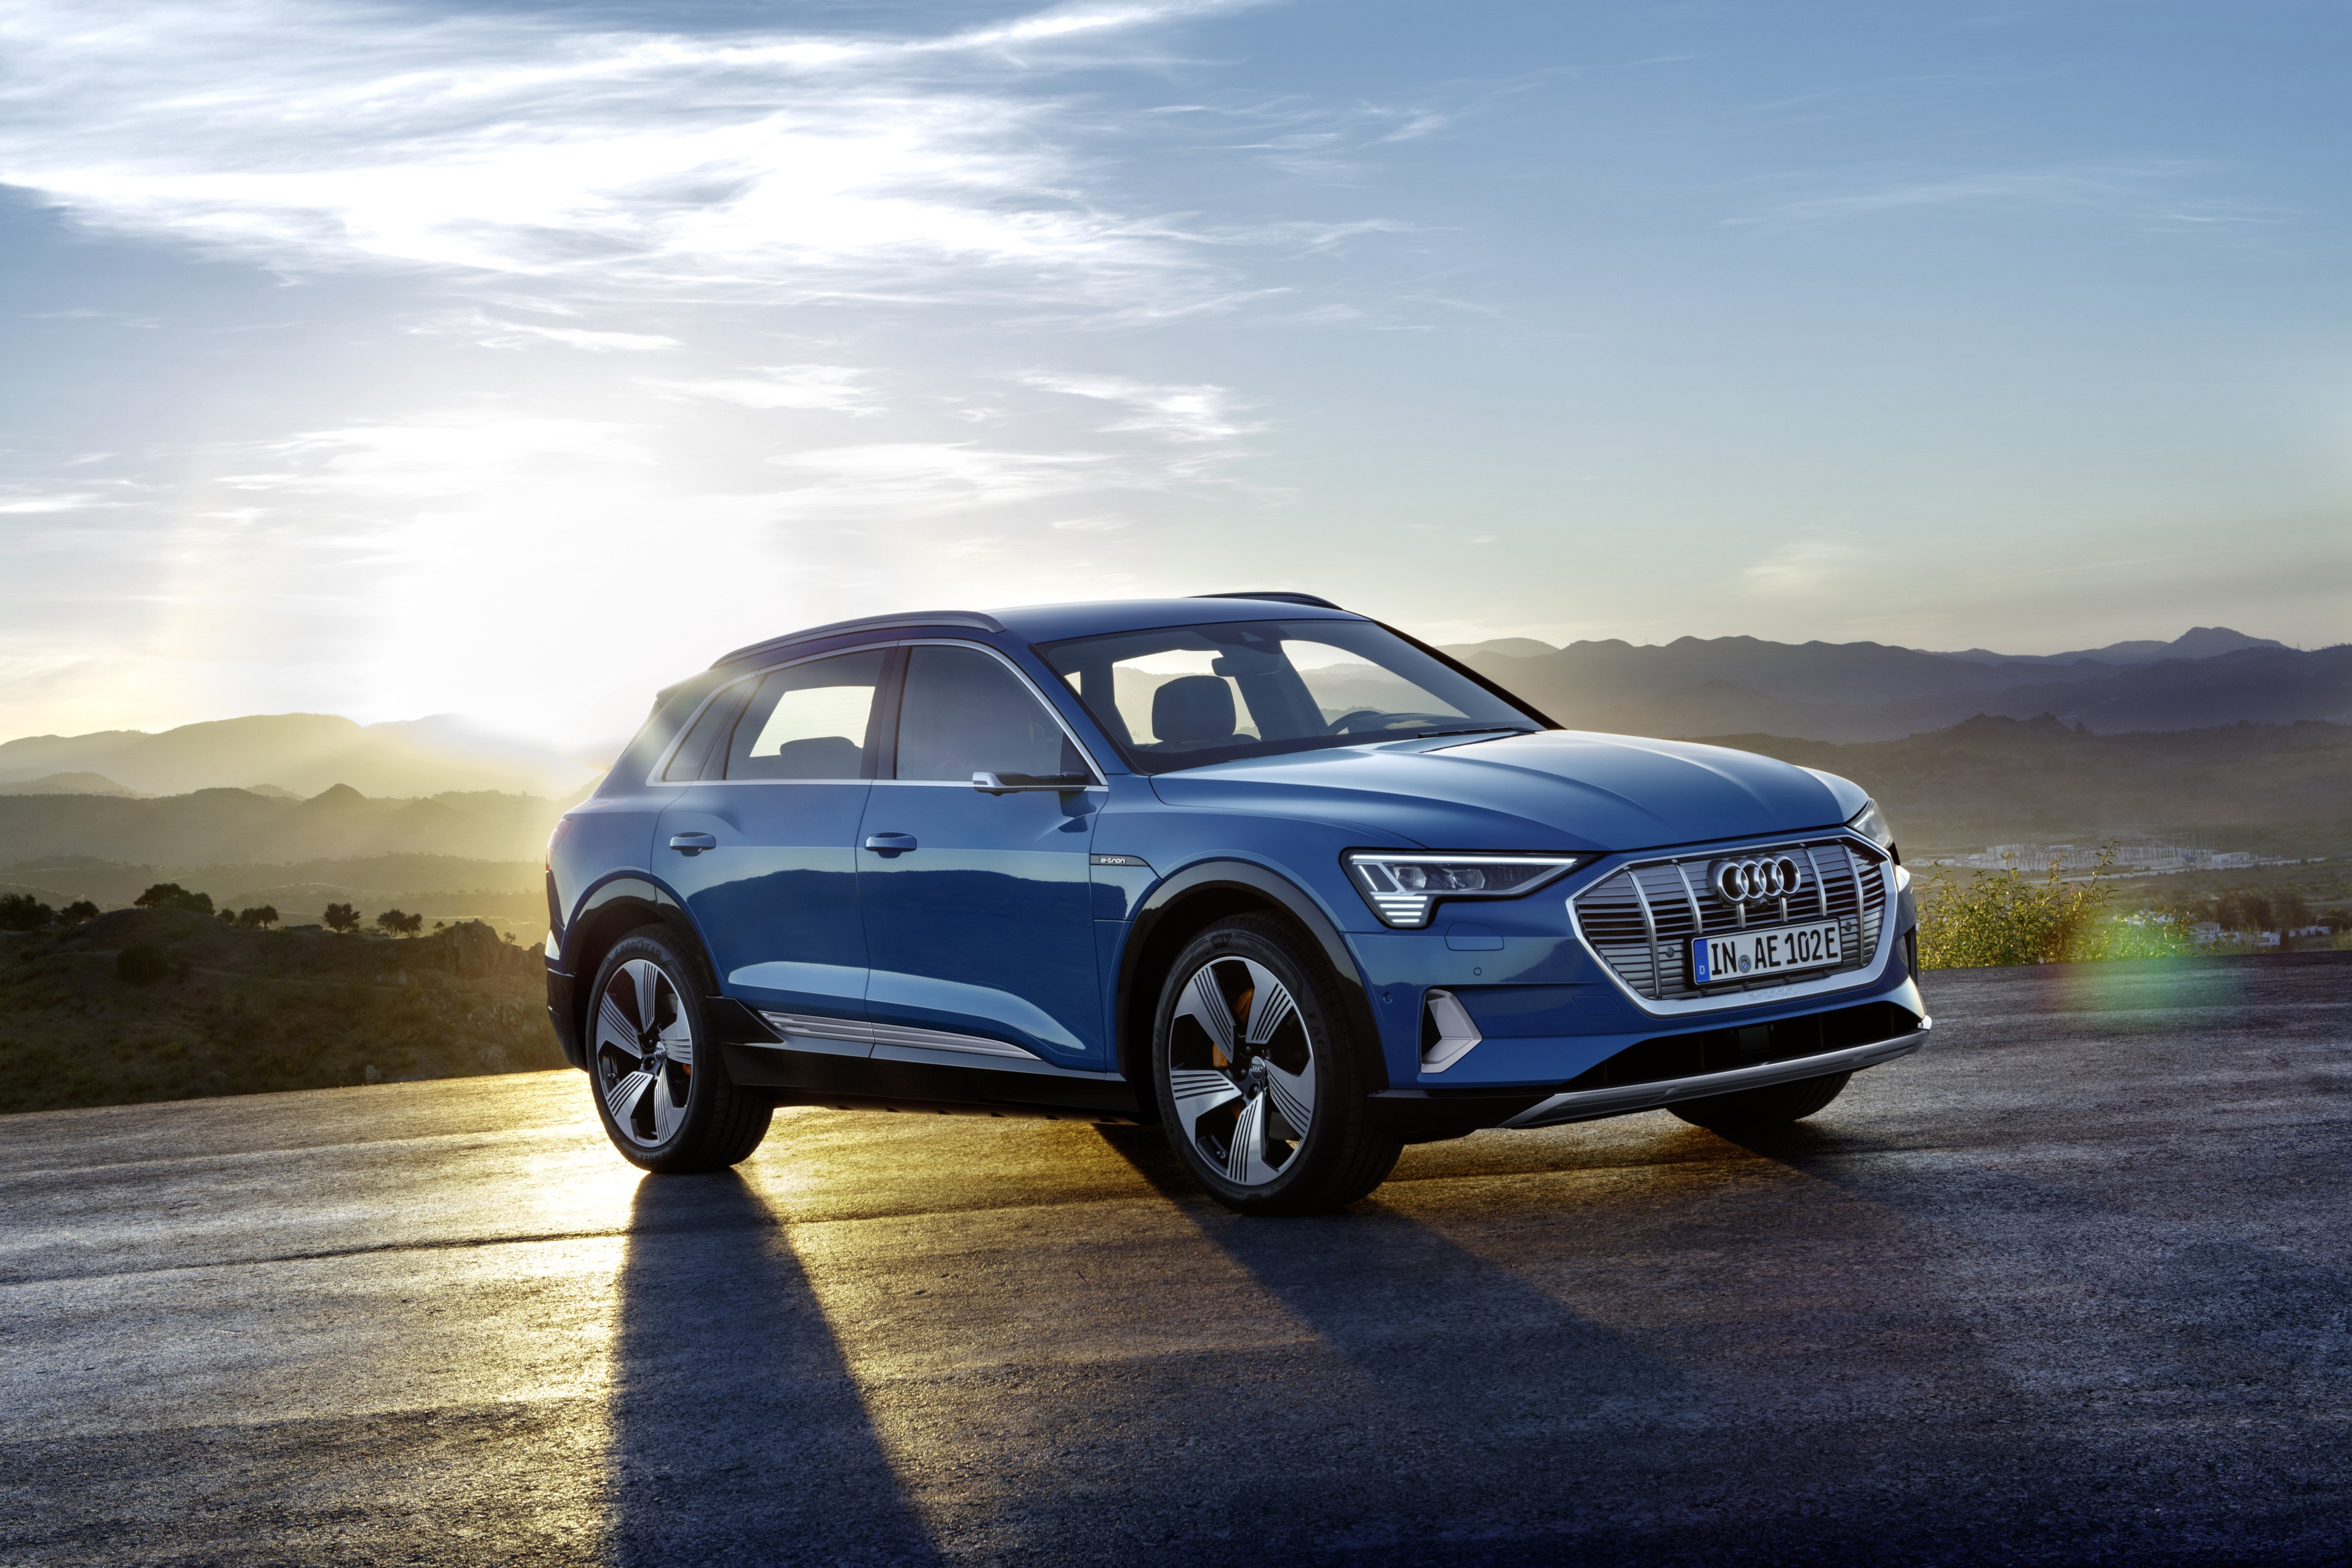 Audi e-tron now available for ordering